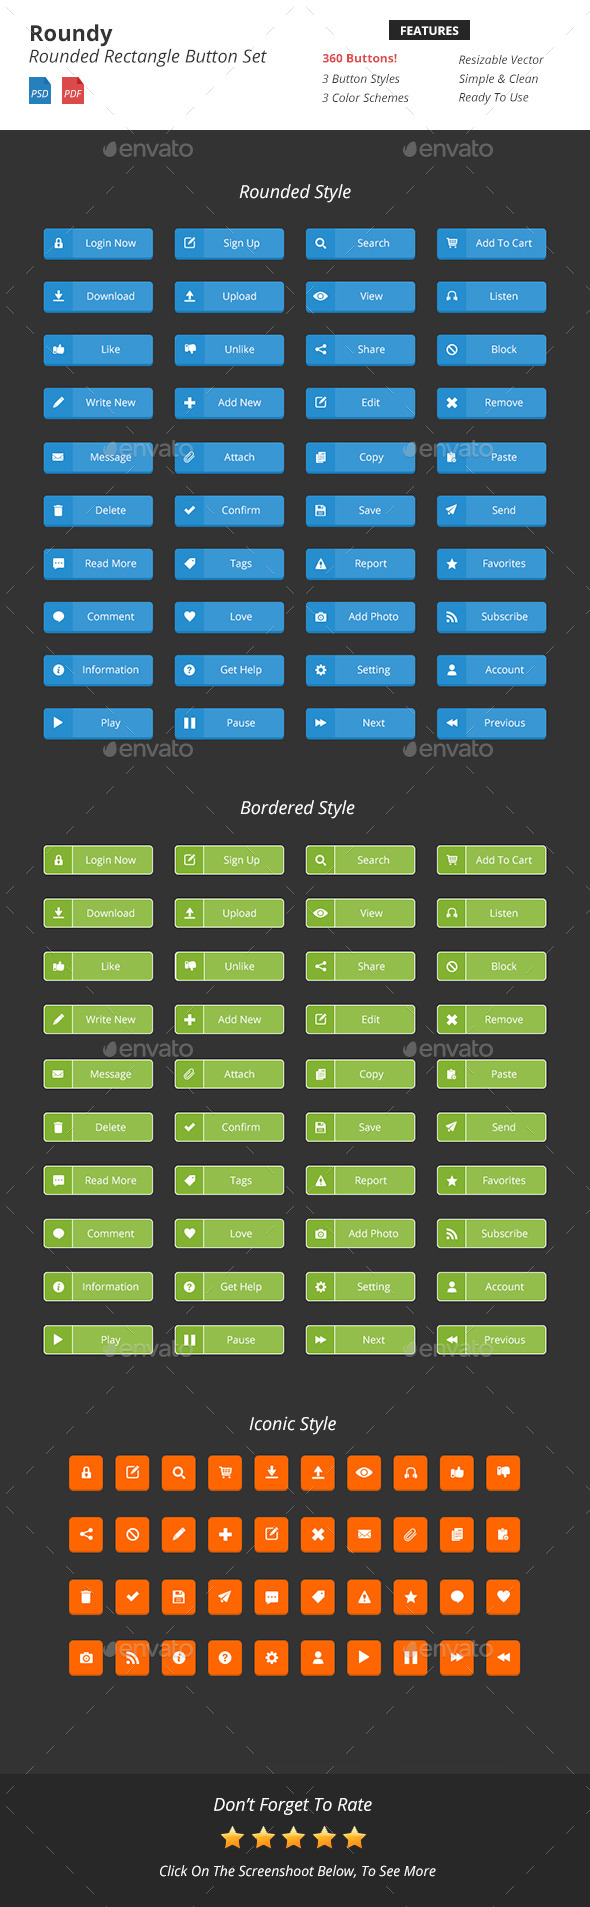 GraphicRiver Roundy Rounded Rectangle Button Set 9433498